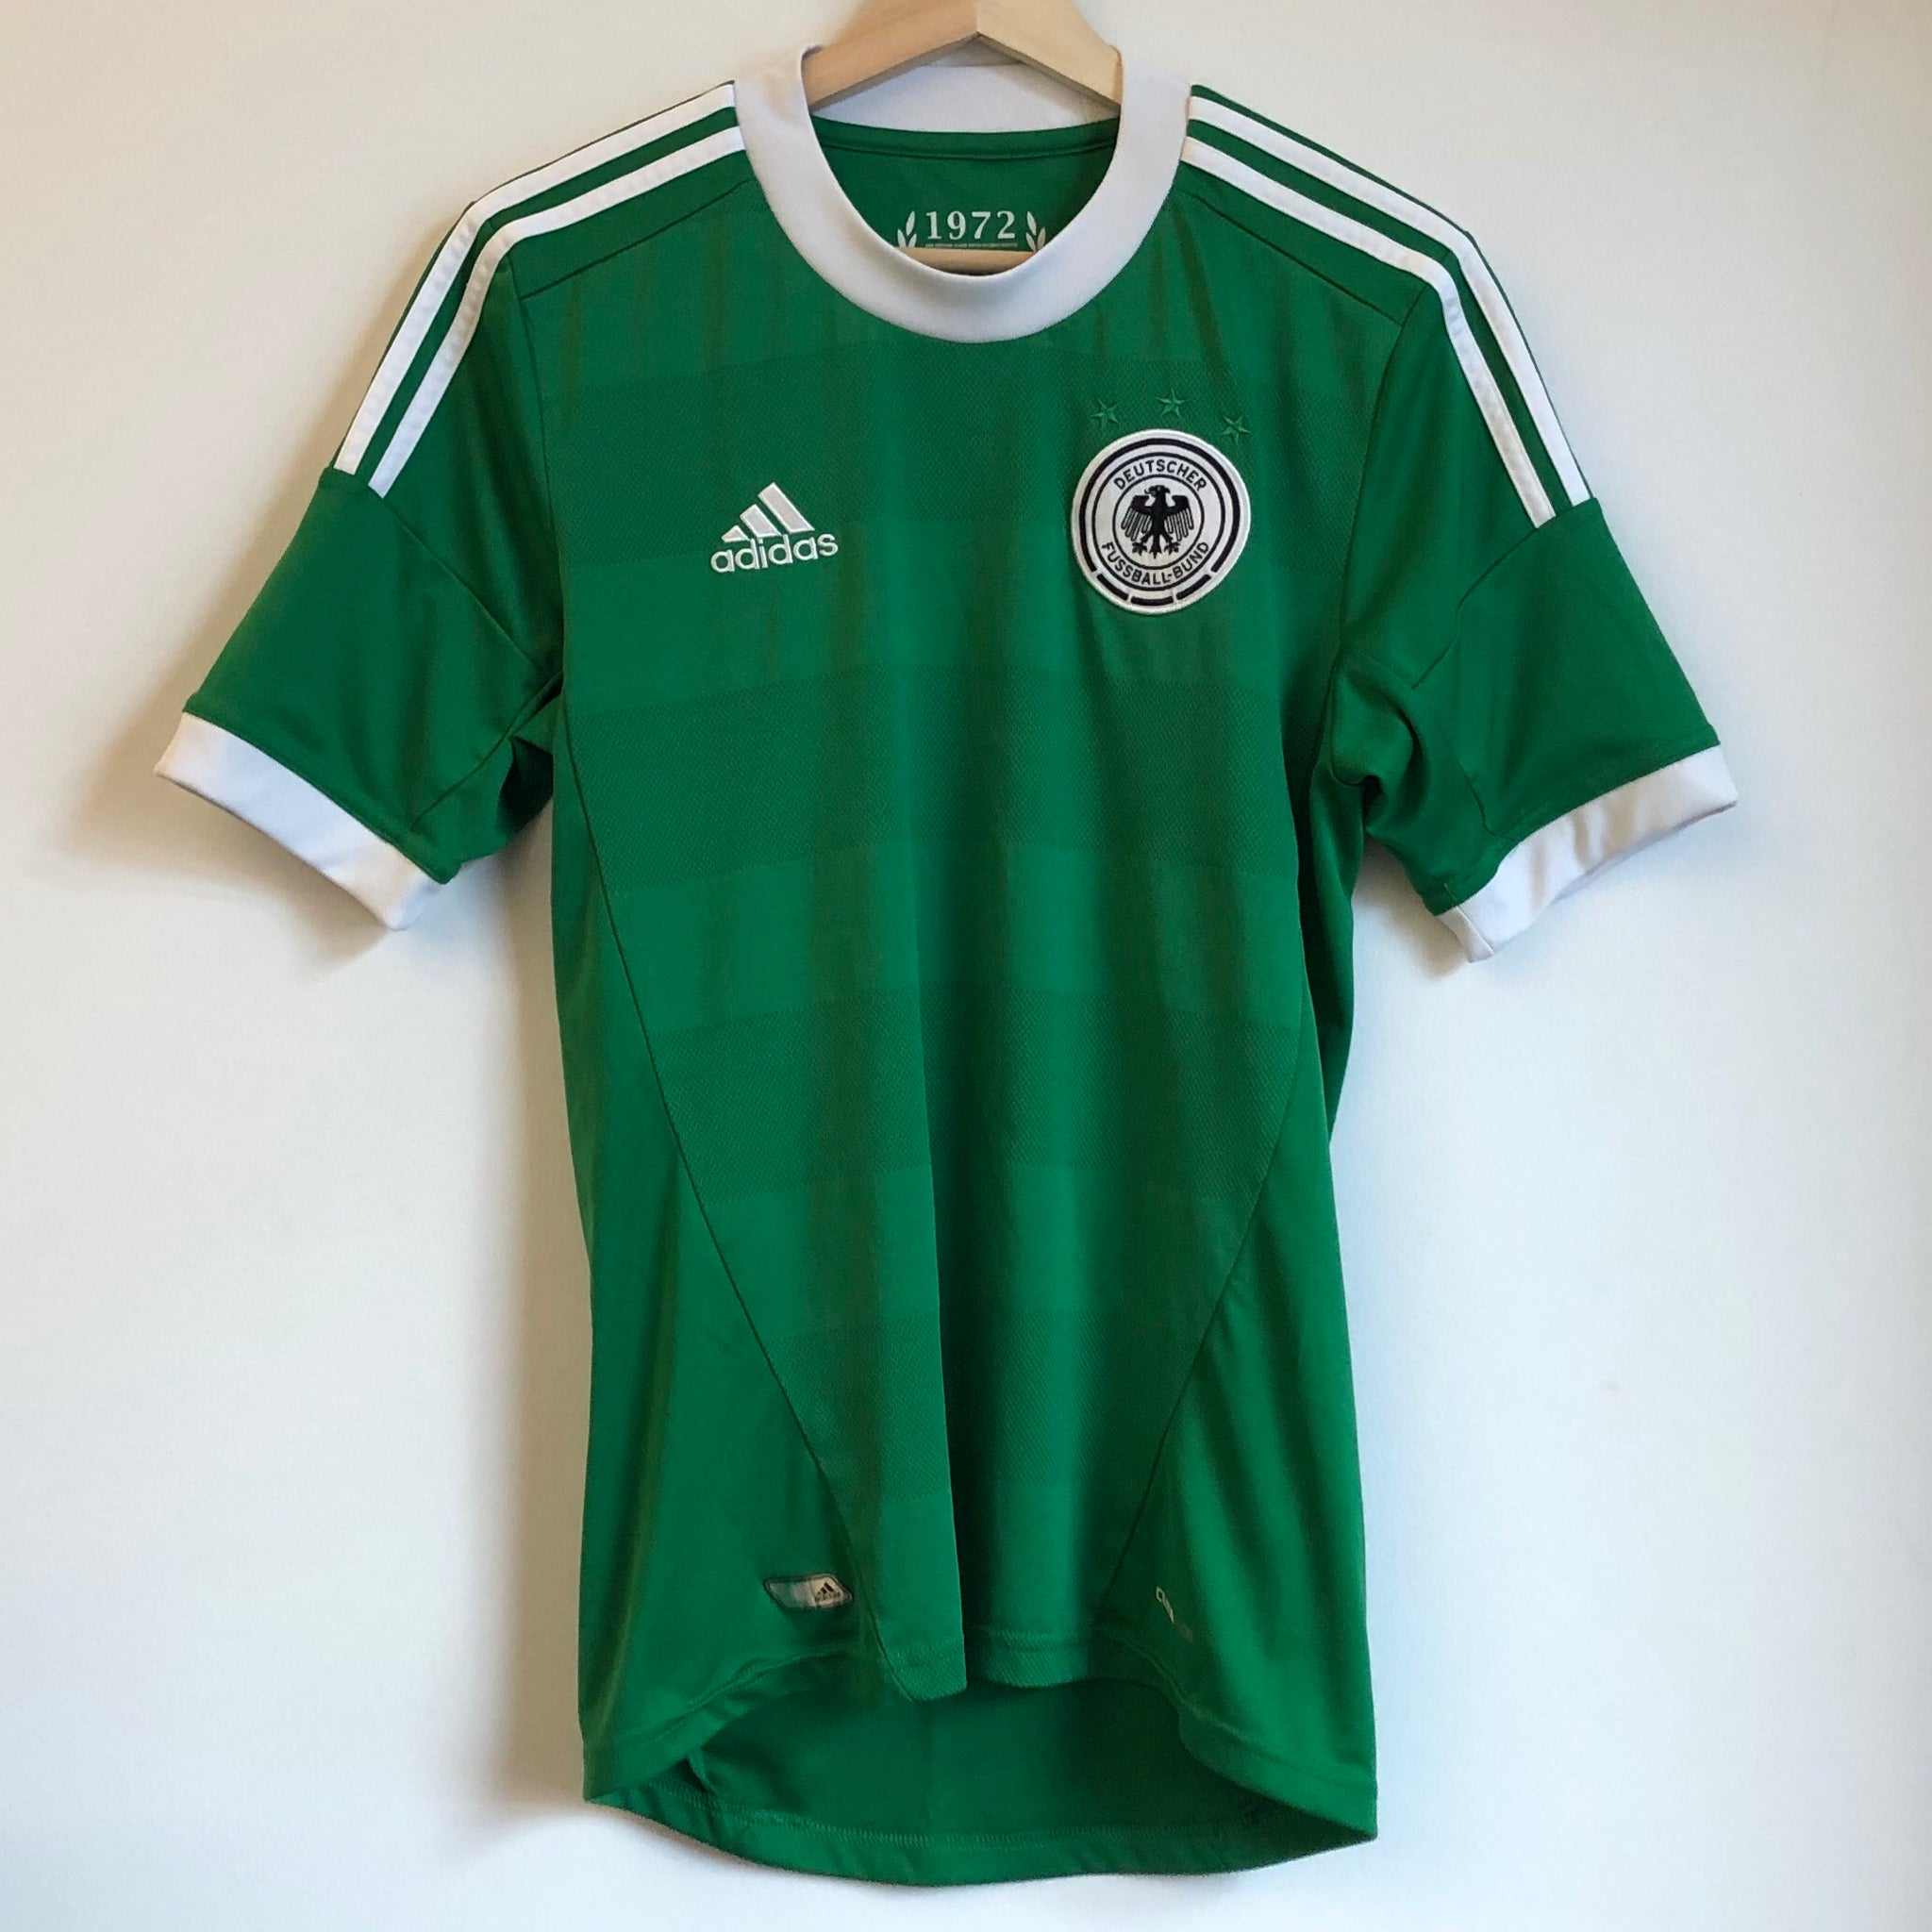 adidas Germany 2012/13 Away Soccer Jersey